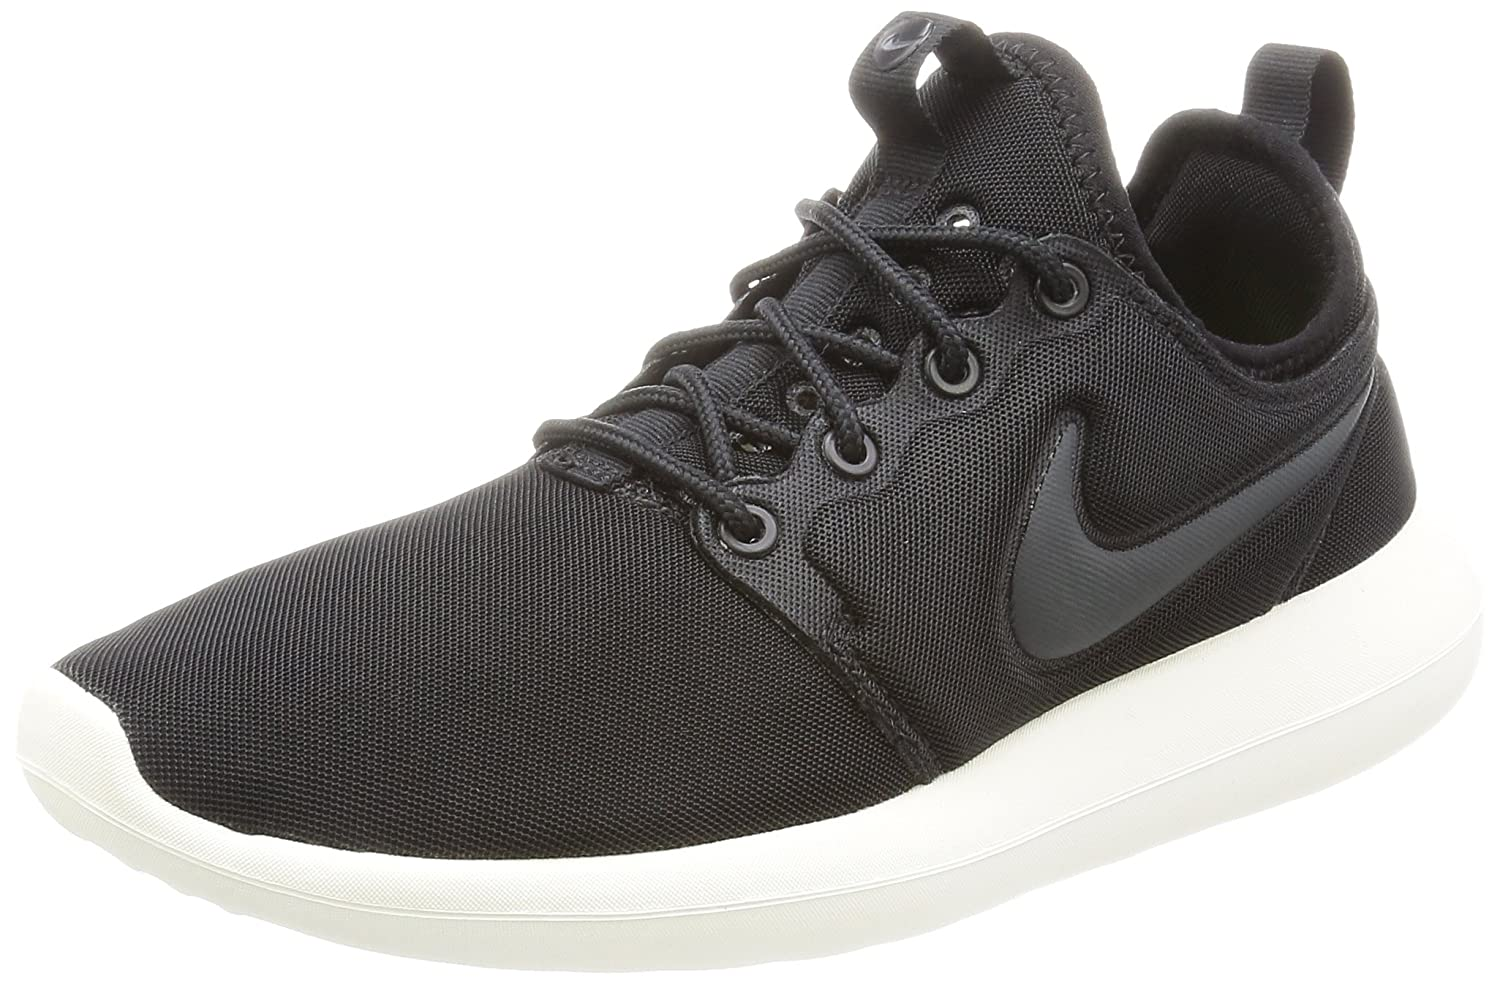 NIKE Women's Roshe Two Running Shoe B01KHQQYDI 8.5 B(M) US|Black / Anthracite-sail-volt